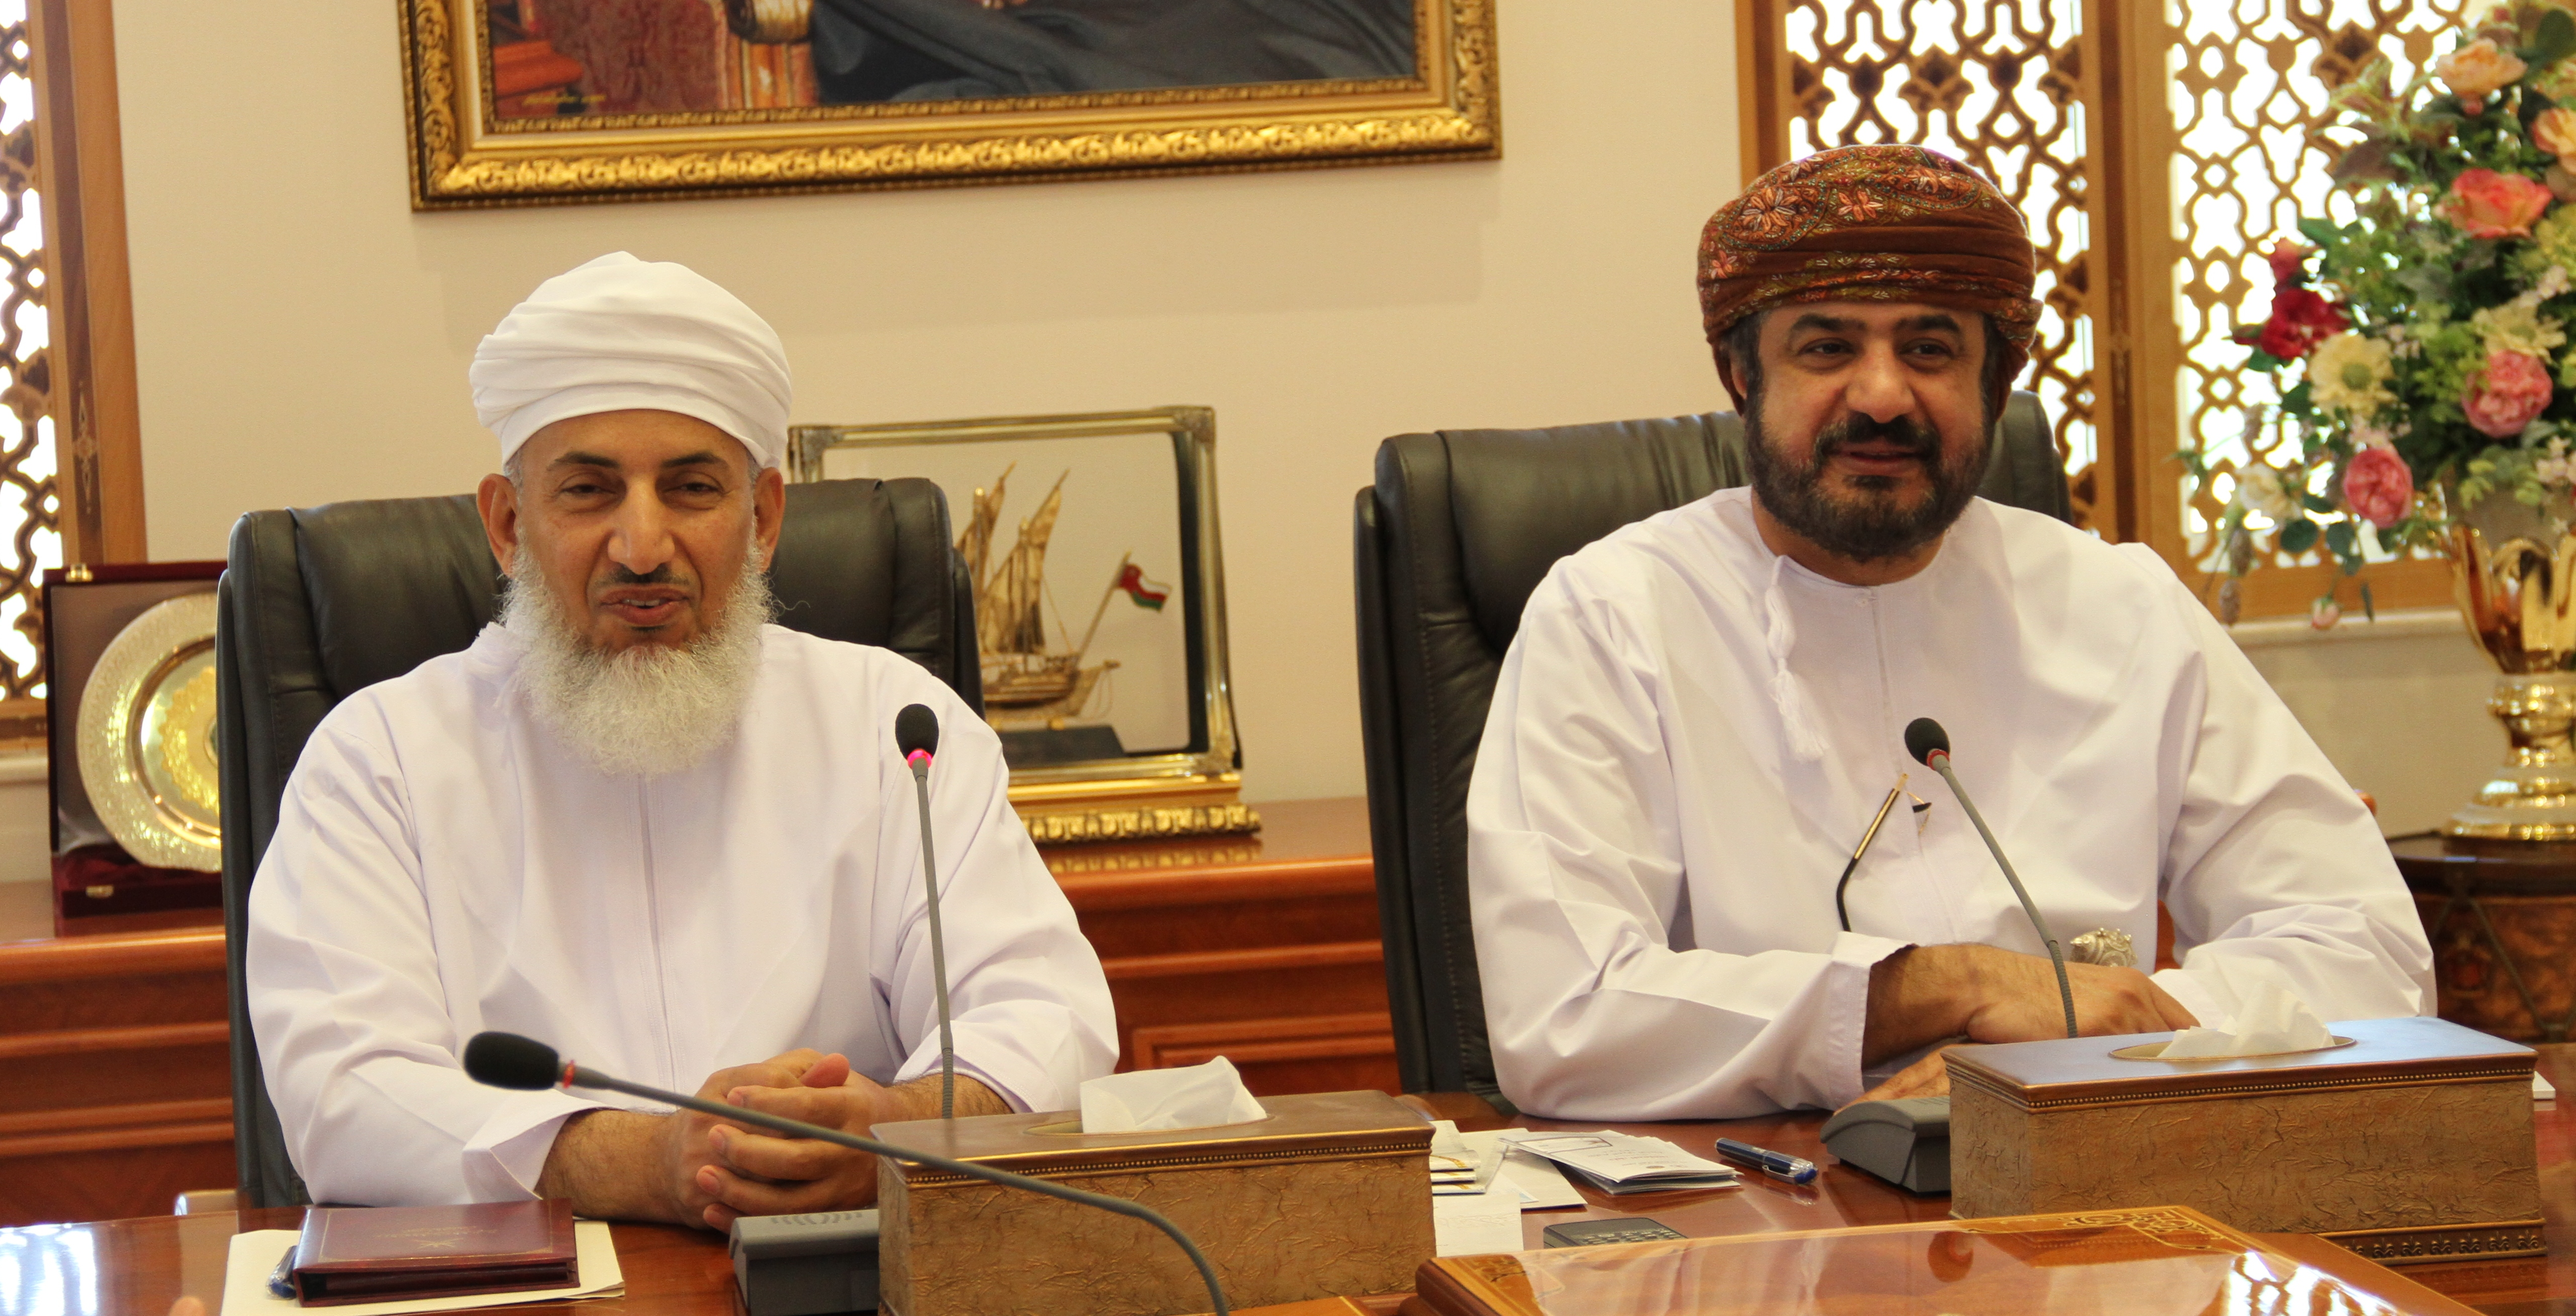 Oman ministry of awqaf e-Services and projects reviewed